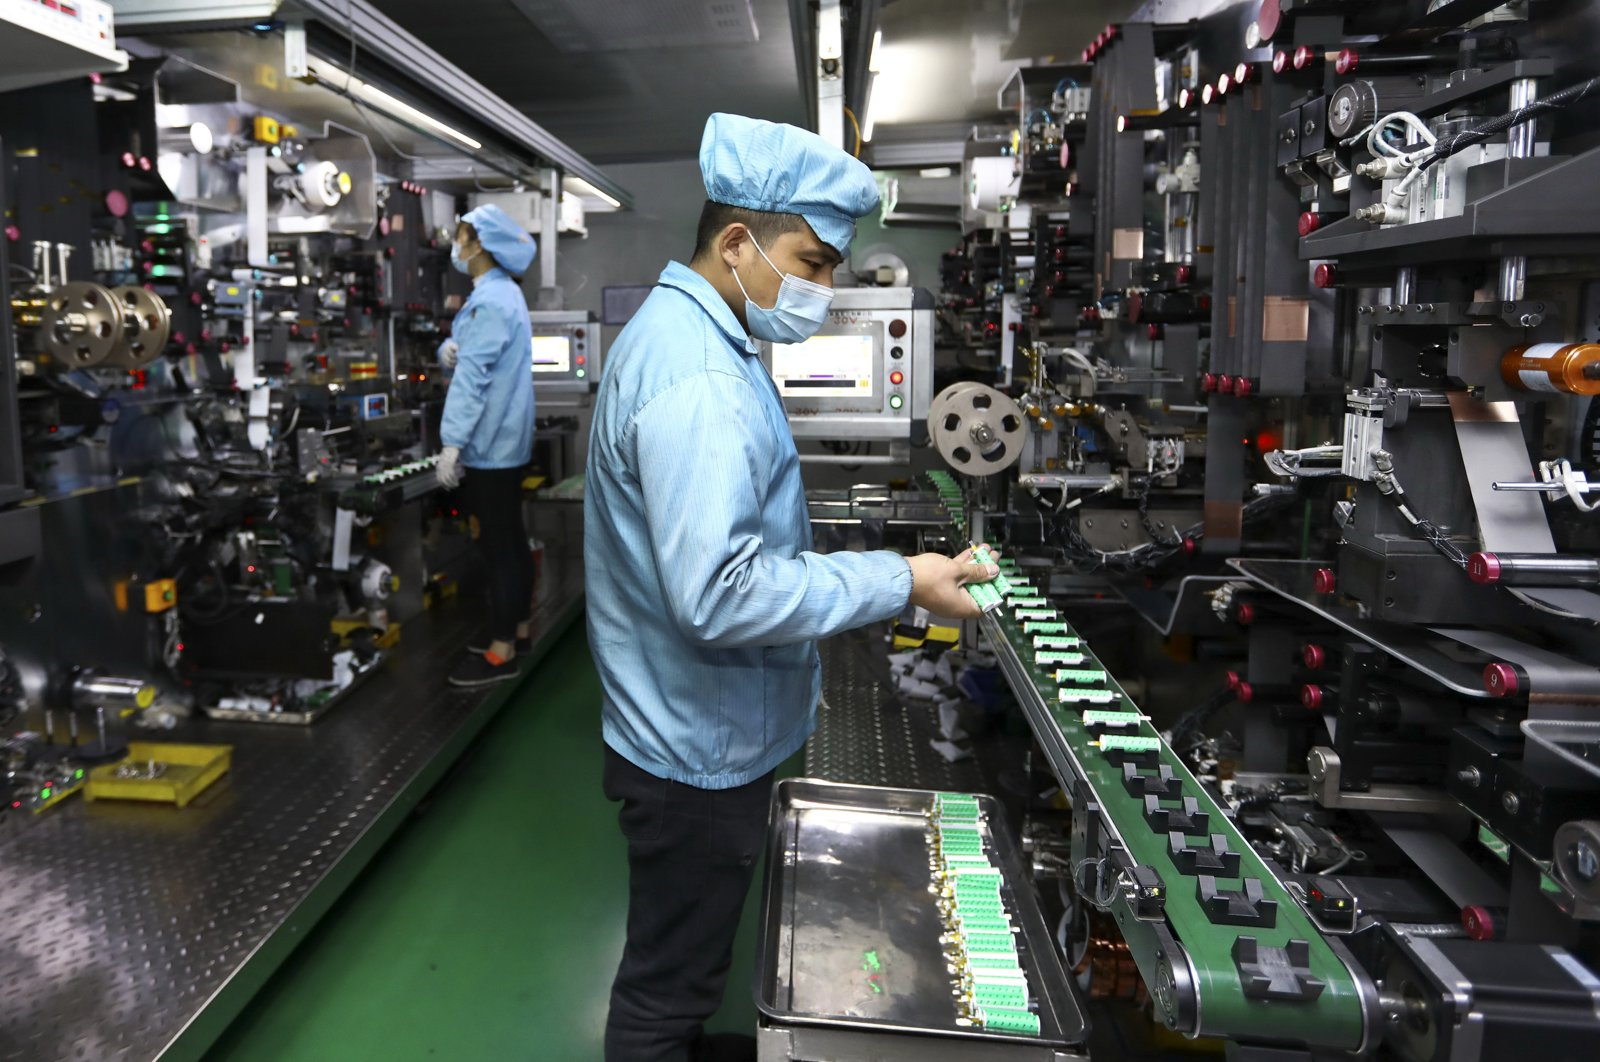 Workers place batteries on a machine at a factory manufacturing lithium batteries in Huaibei in central China's Anhui province, Nov. 14, 2020. (Chinatopix via AP)